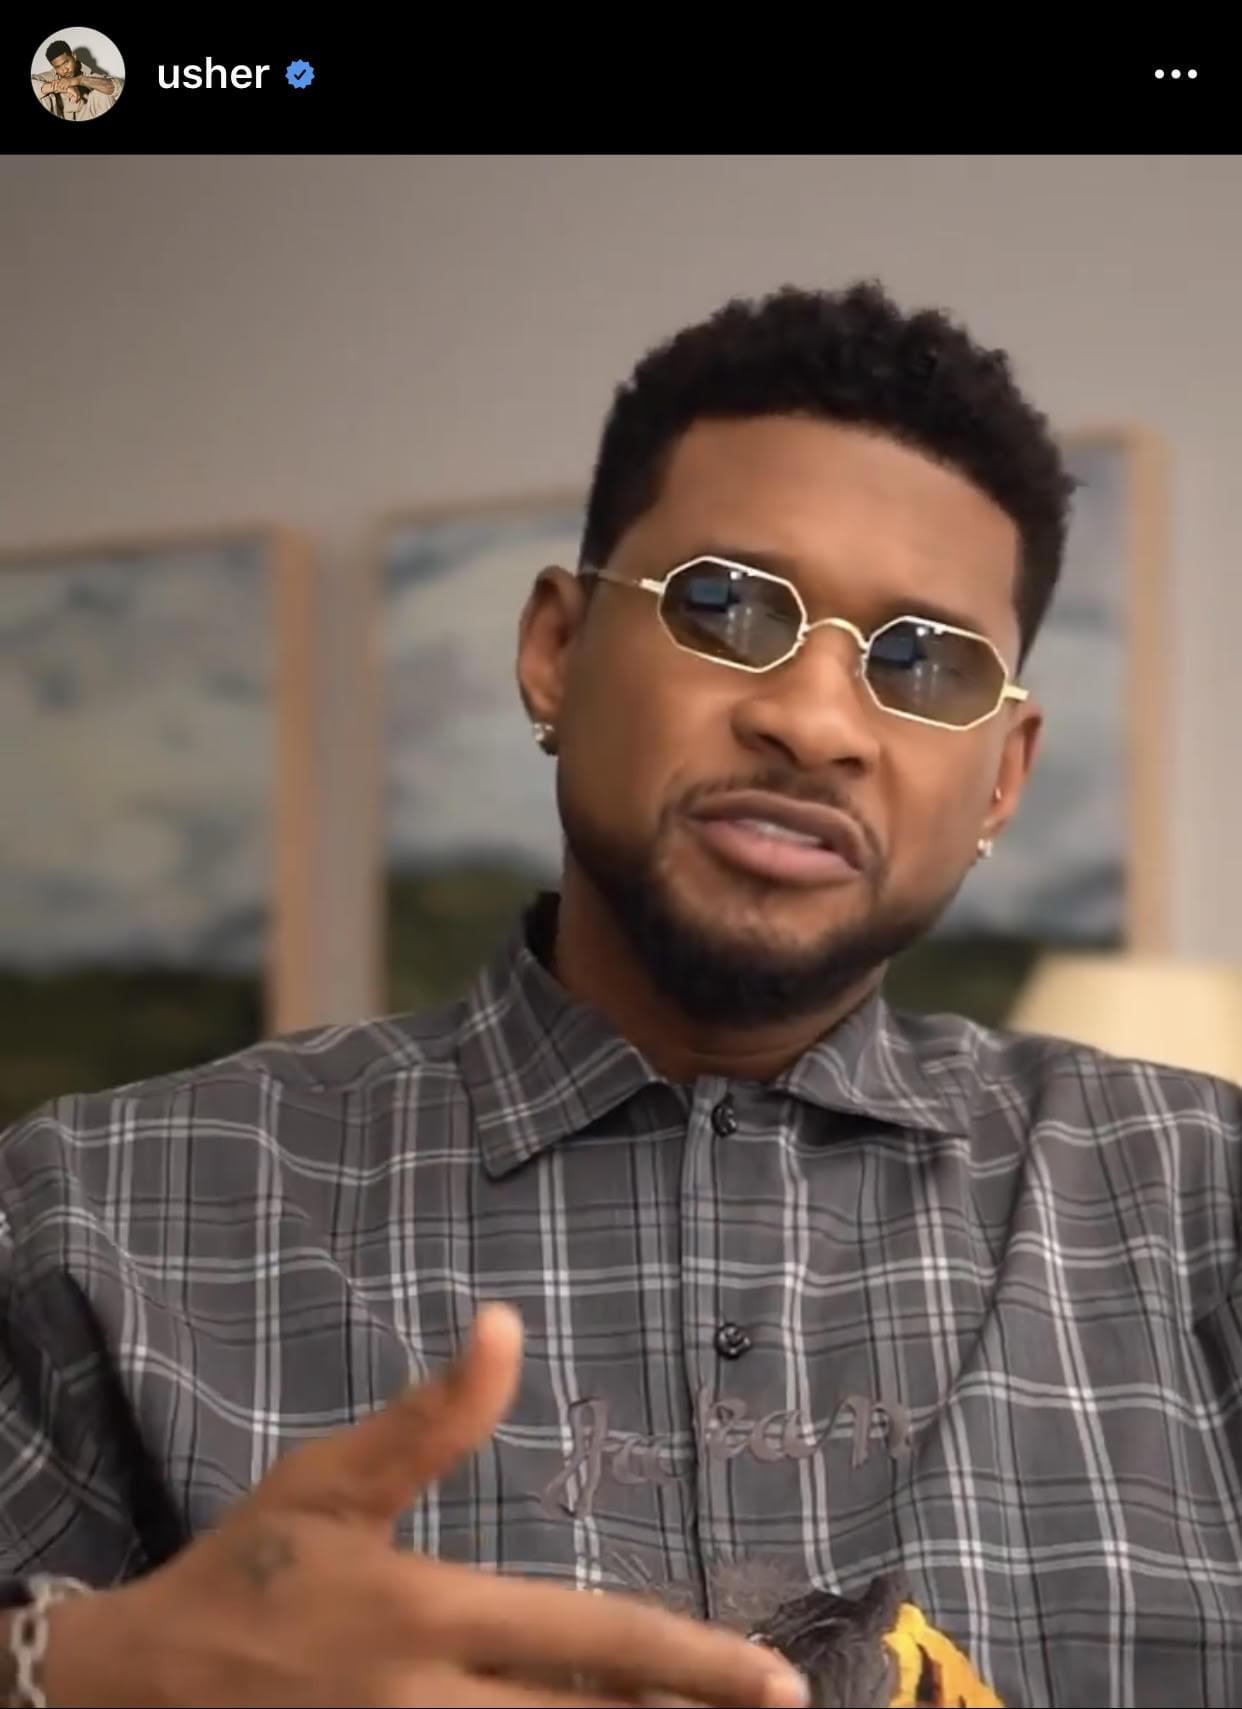 Usher encourages fans to text him on his REAL number via Instagram [VIDEO]